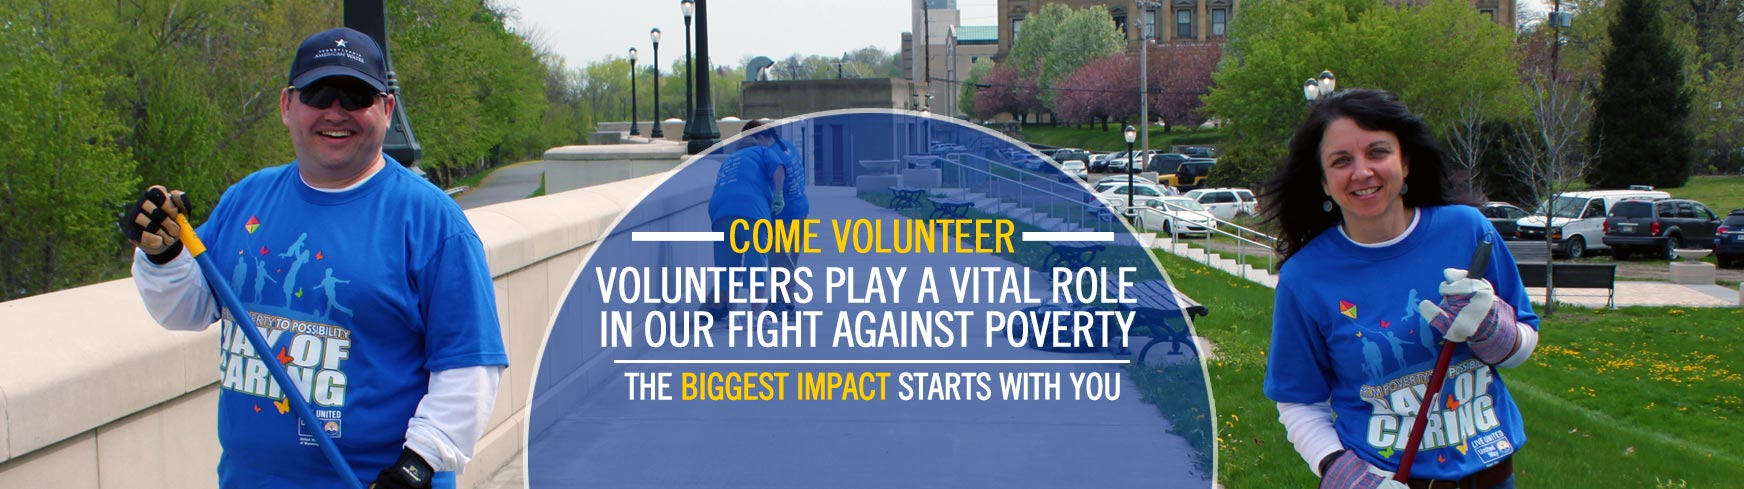 Volunteer to help the United Way today!